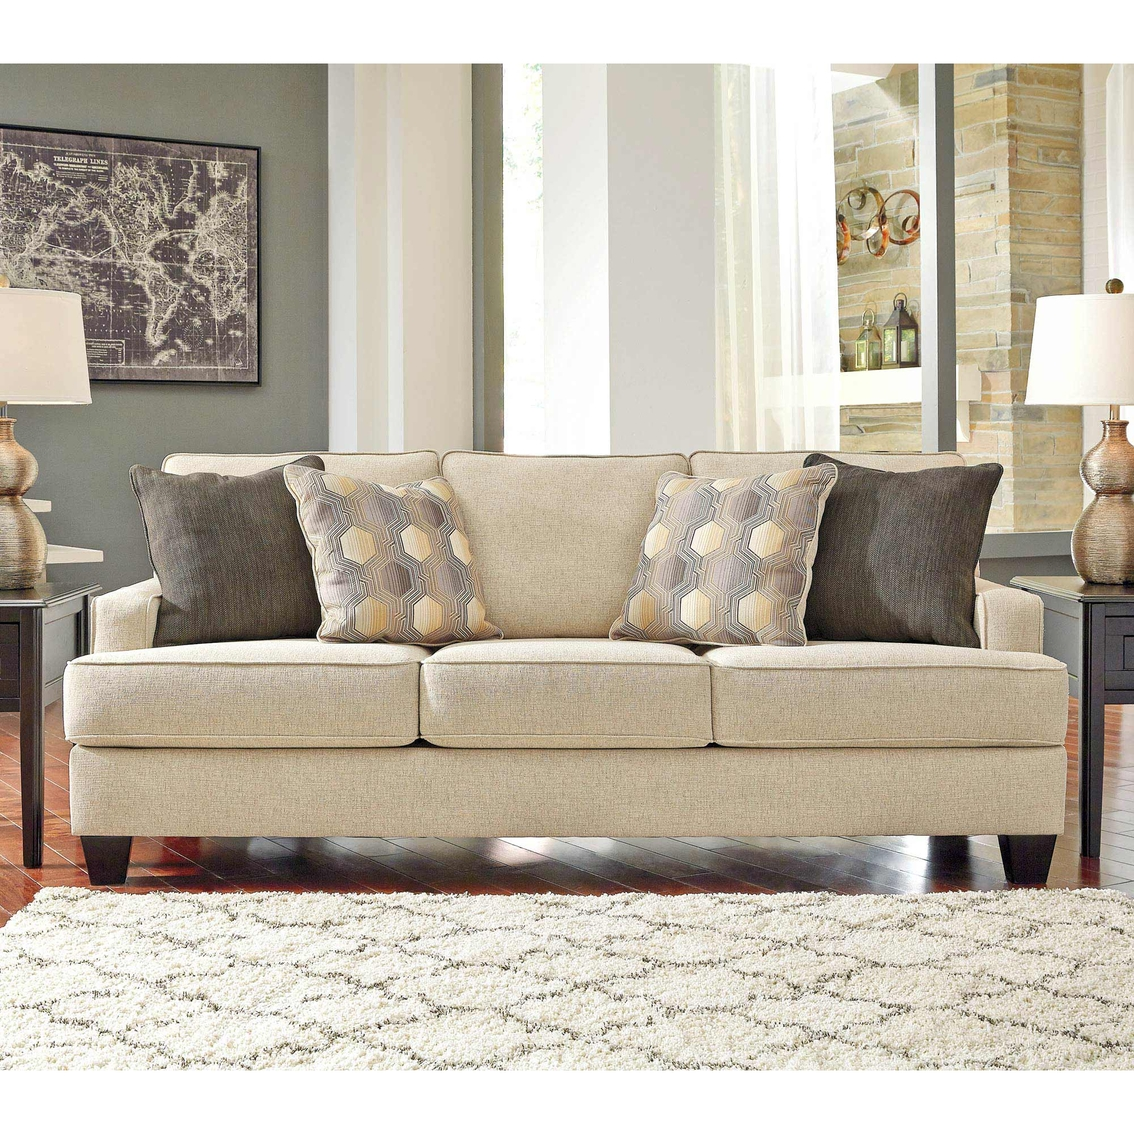 Benchcraft Sofas Vandive Sofa By Benchcraft From Www